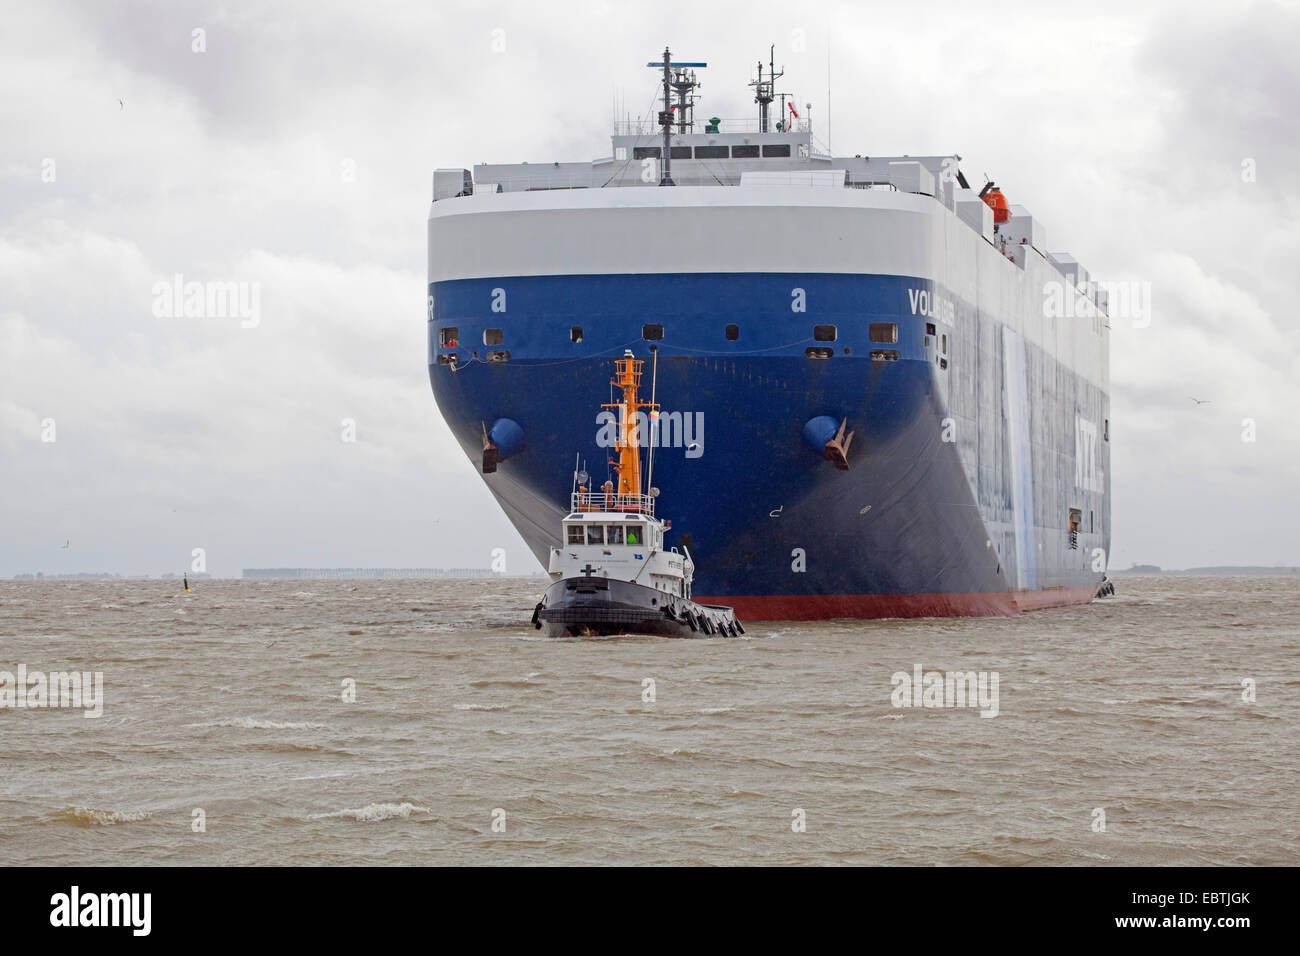 car carrier Voland Leader with towboat, Germany, Lower Saxony, East Frisia, Emden - Stock Image